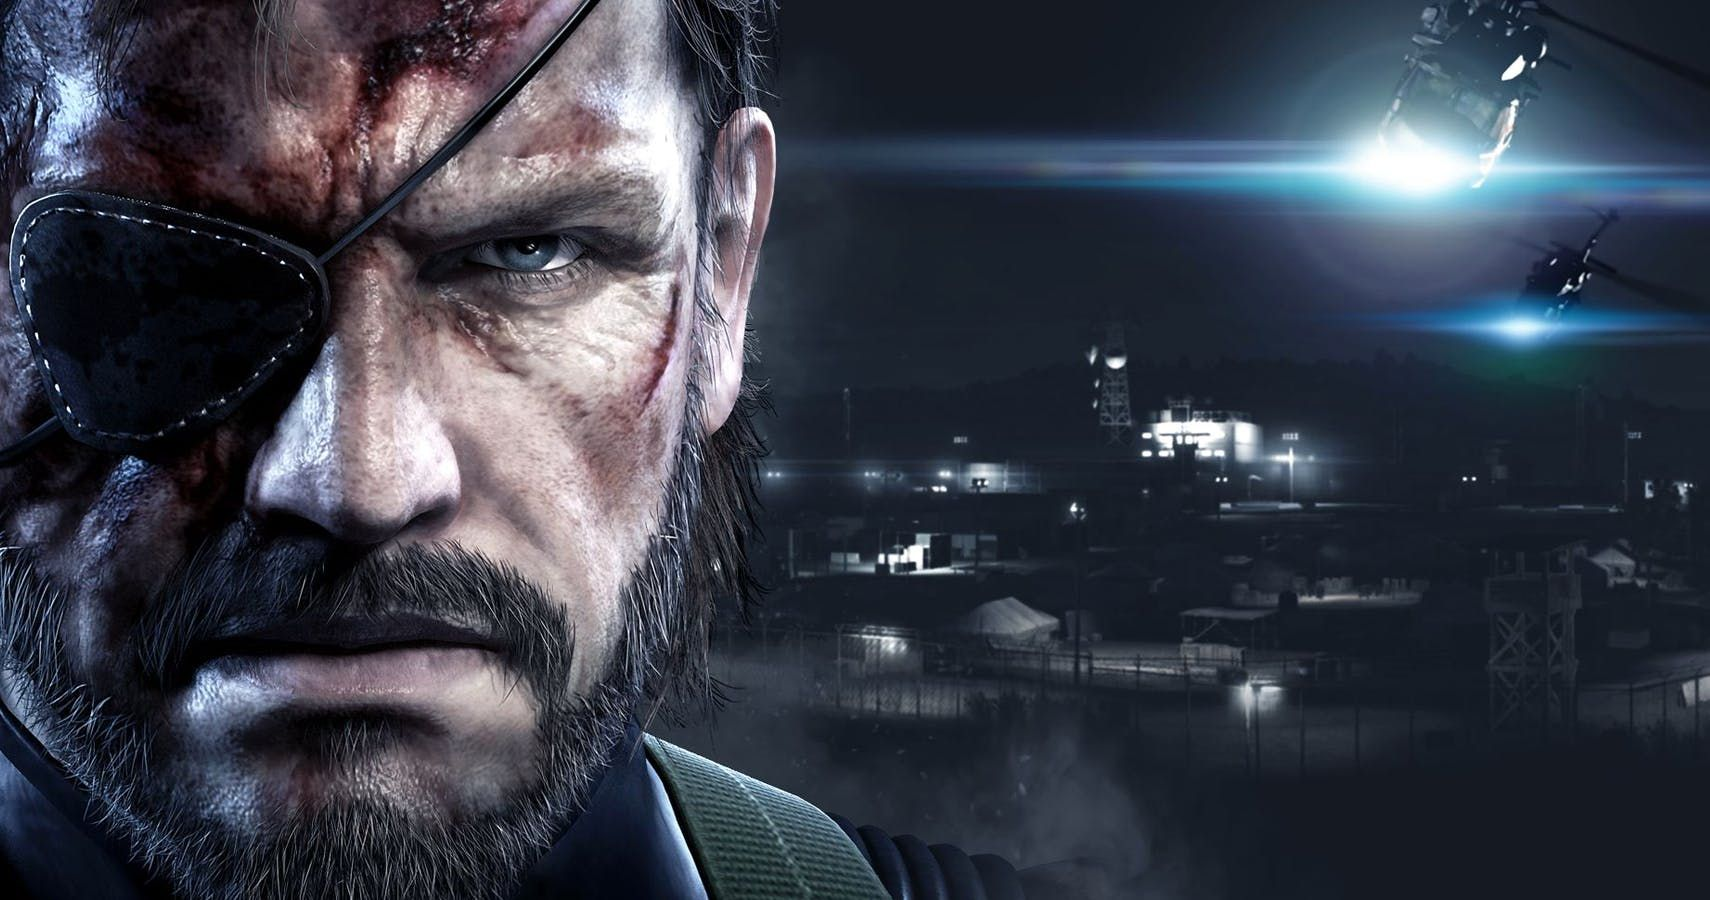 metal gear solid series - What order do the MGS games take ...